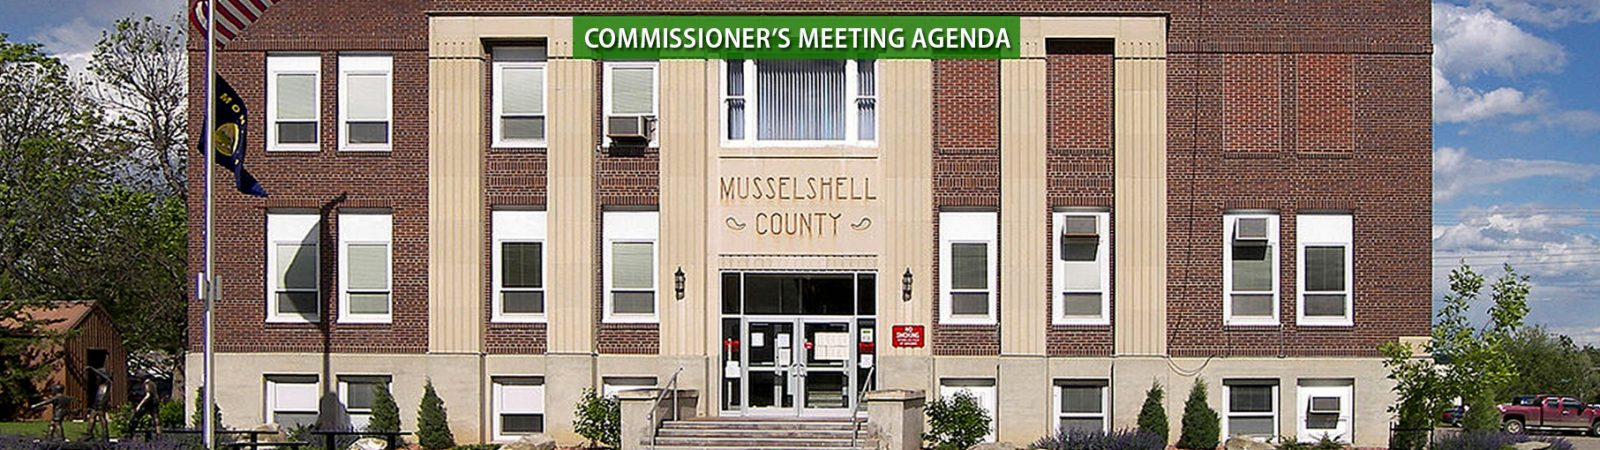 Musselshell County Courthouse a link to the Commissioners Meeting Agendas